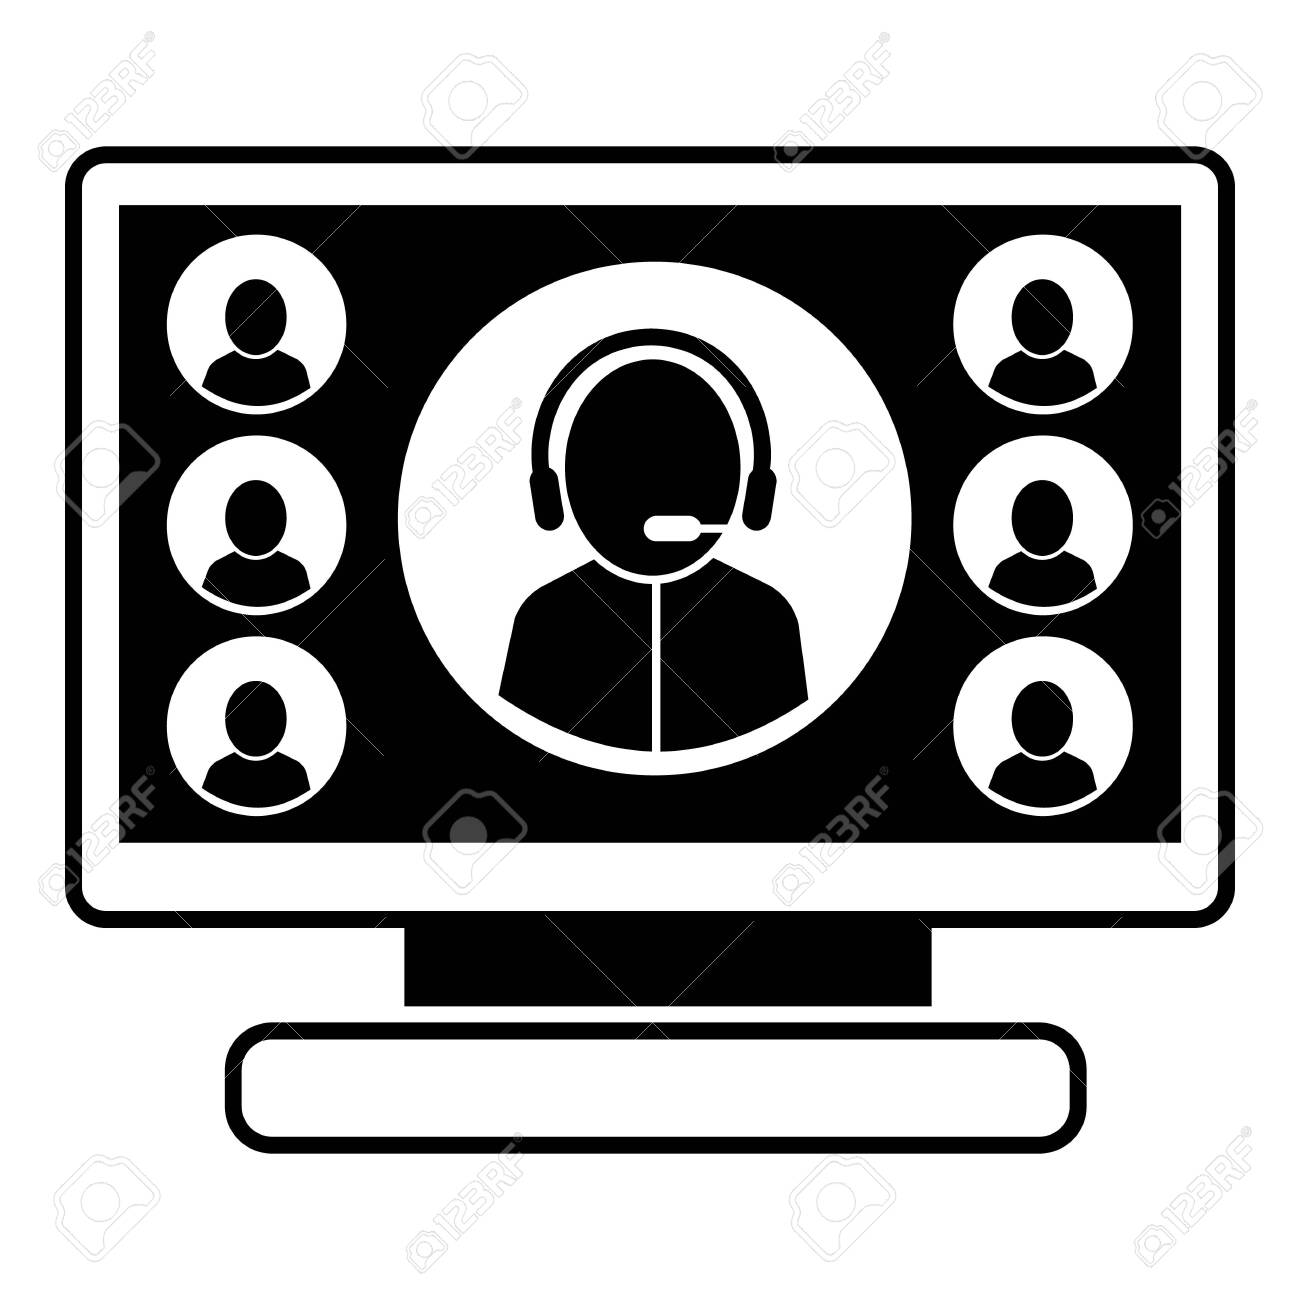 Online webinar icon. Simple illustration of online webinar vector icon for web design isolated on white background - 124405032